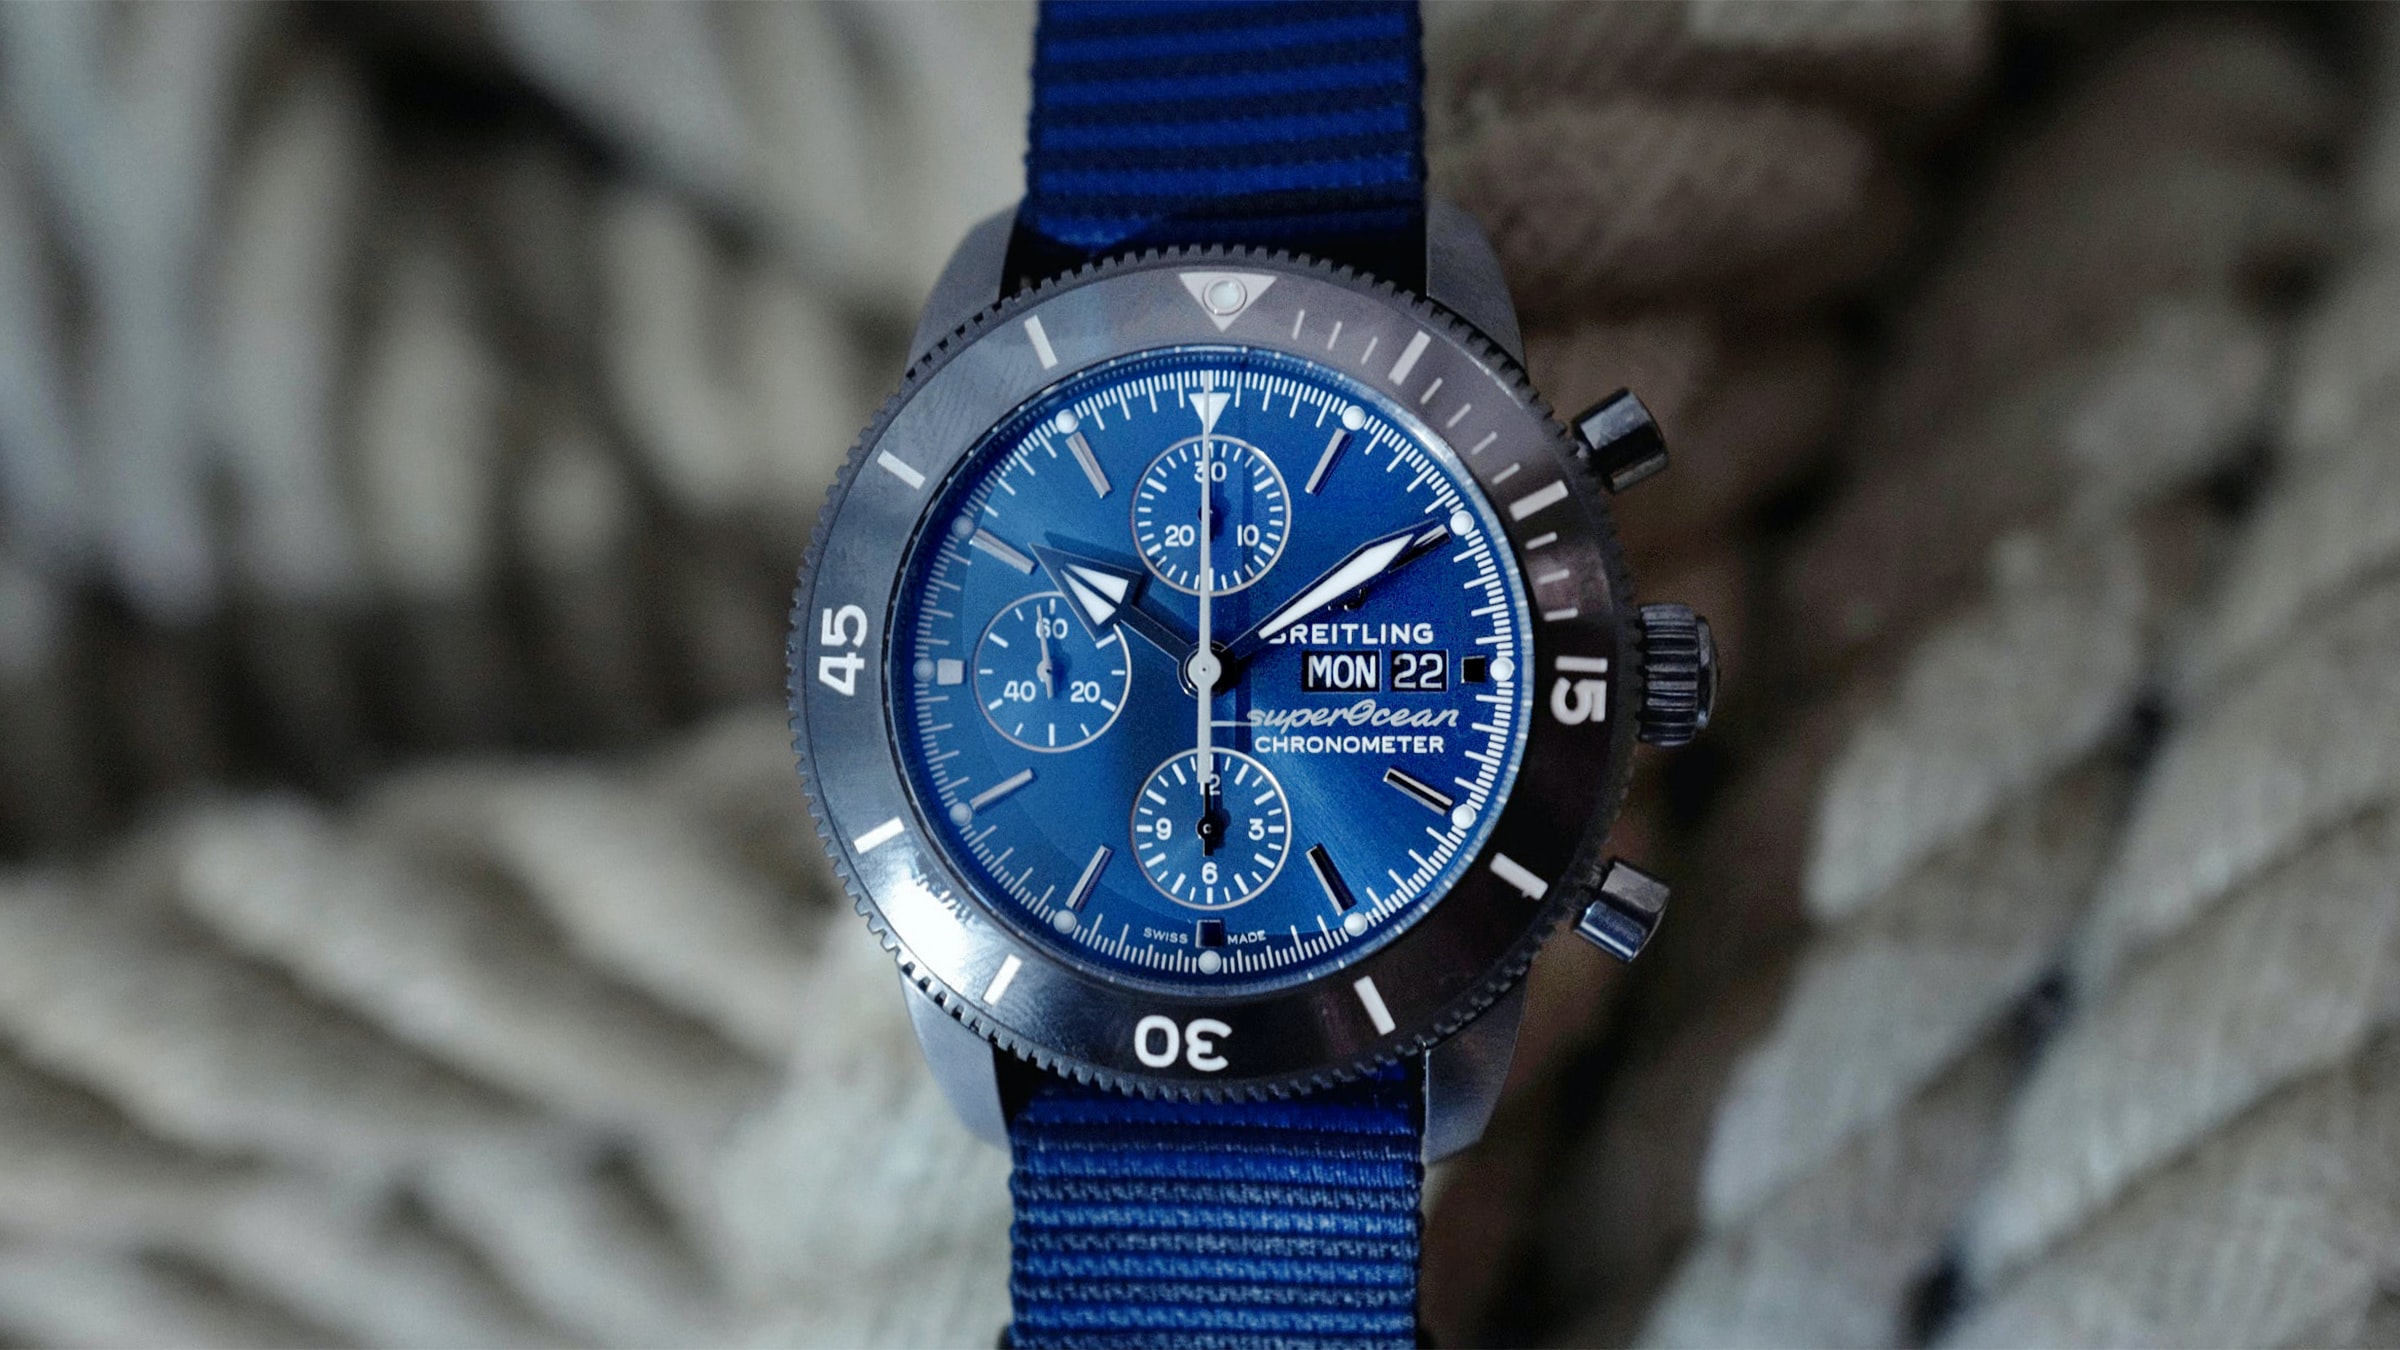 Introducing: The Breitling Superocean Héritage II Chronograph 44 Outerknown breitling superocean